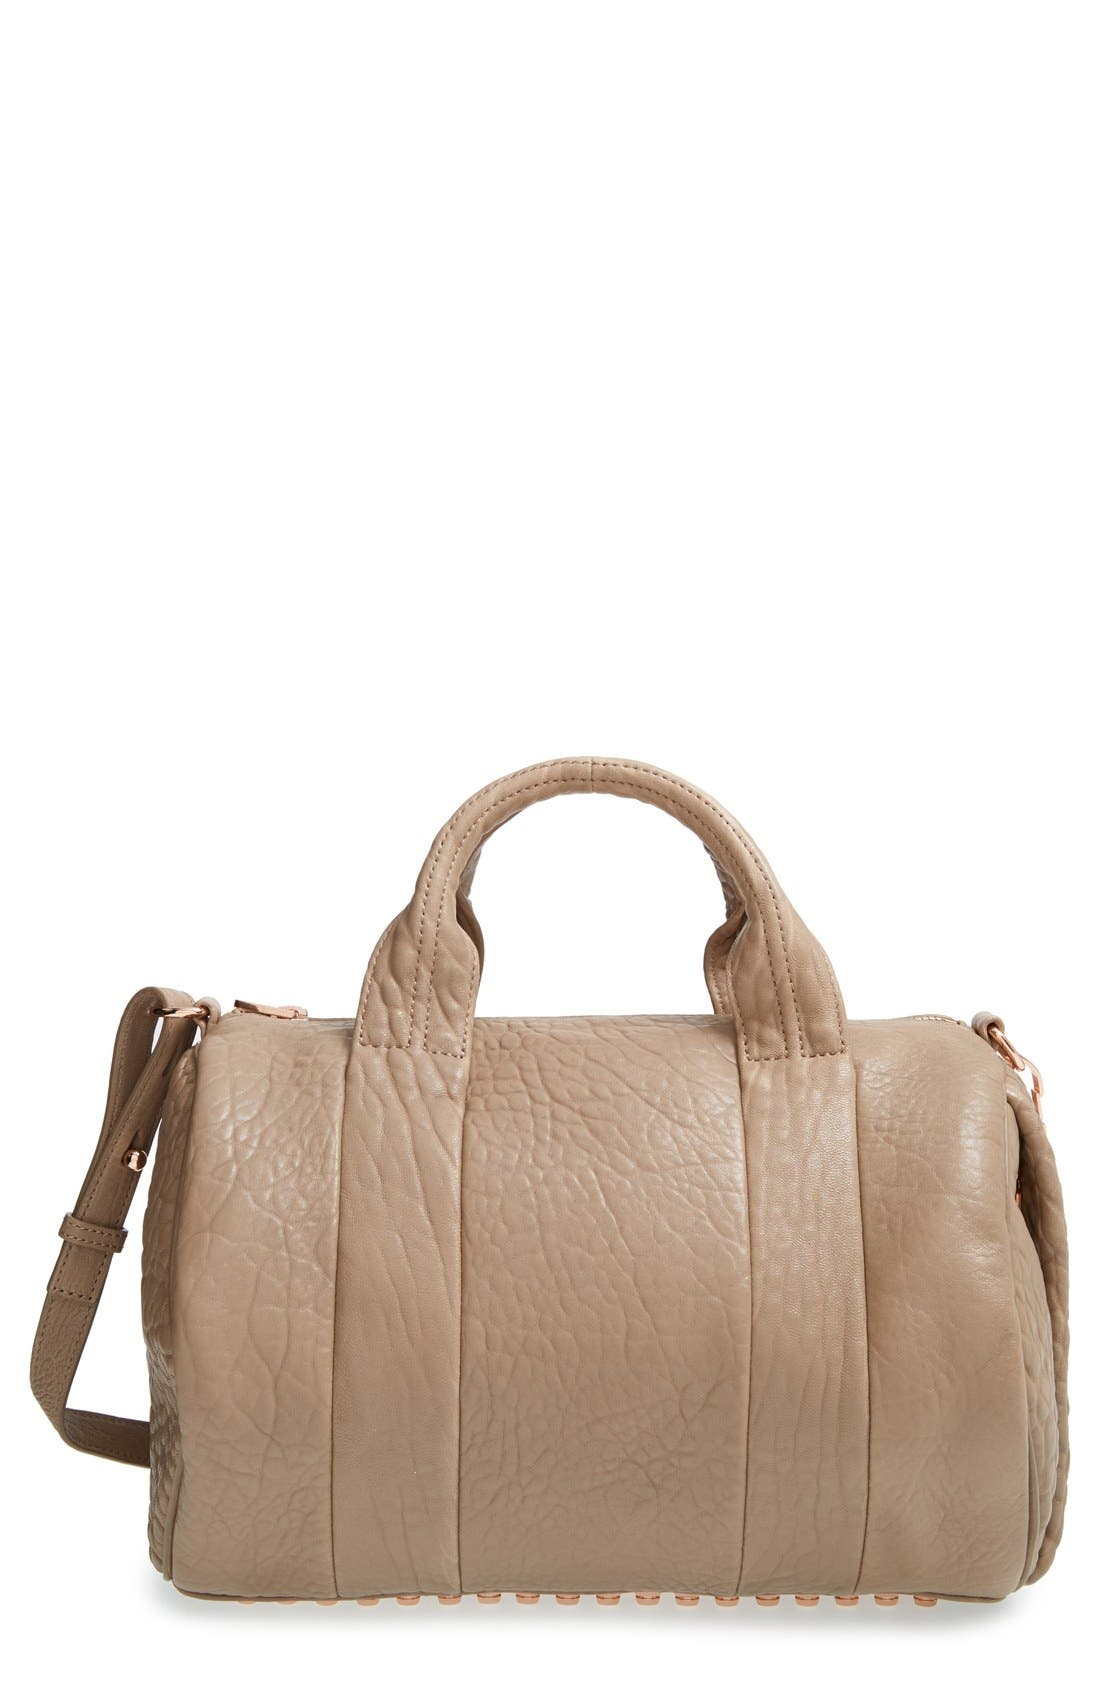 Main Image - Alexander Wang 'Rocco - Rose Gold' Leather Satchel